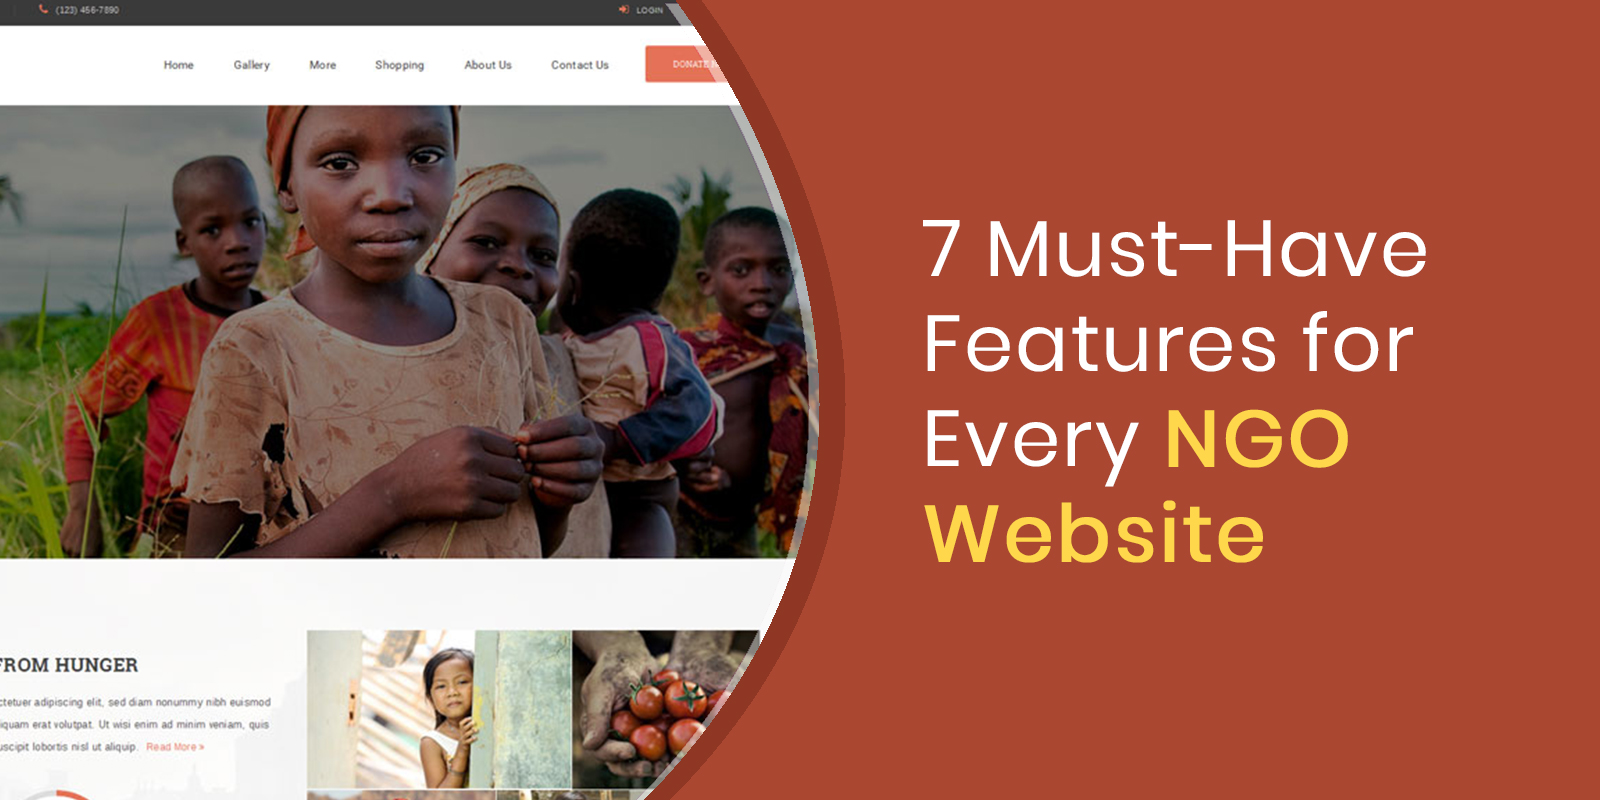 7 Must-Have Features for Every NGO Website